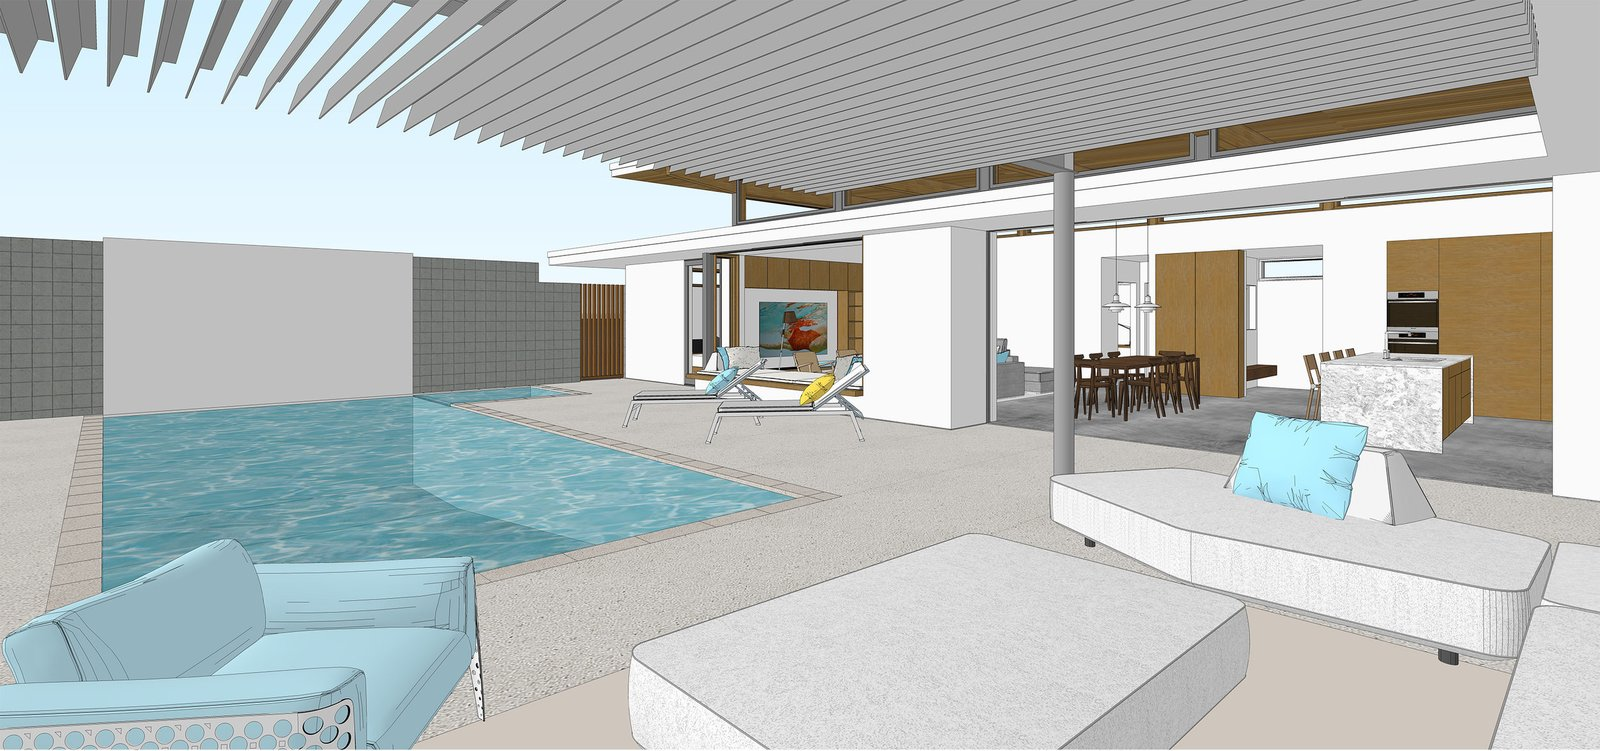 Dwell Axiom Desert House Joel Turkel Interior Rendering